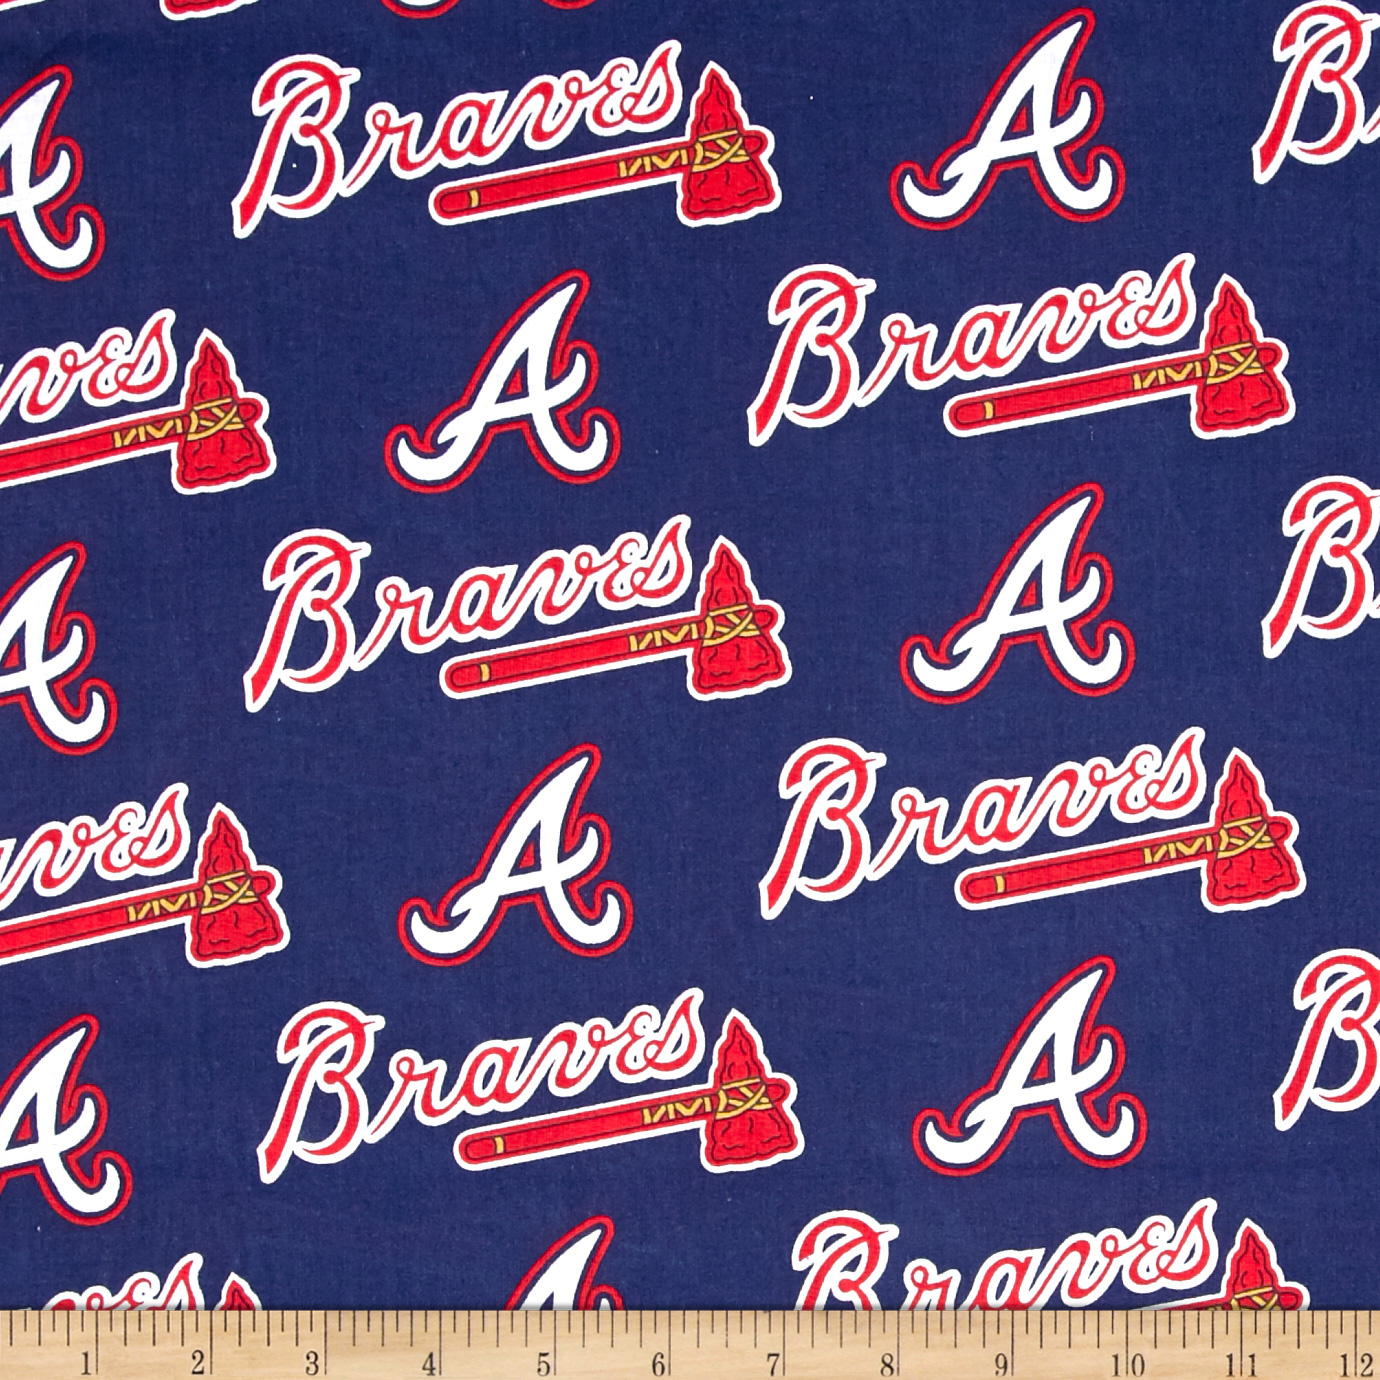 MLB Cotton Broadcloth Atlanta Braves Navy/Red Fabric by Fabric Traditions in USA